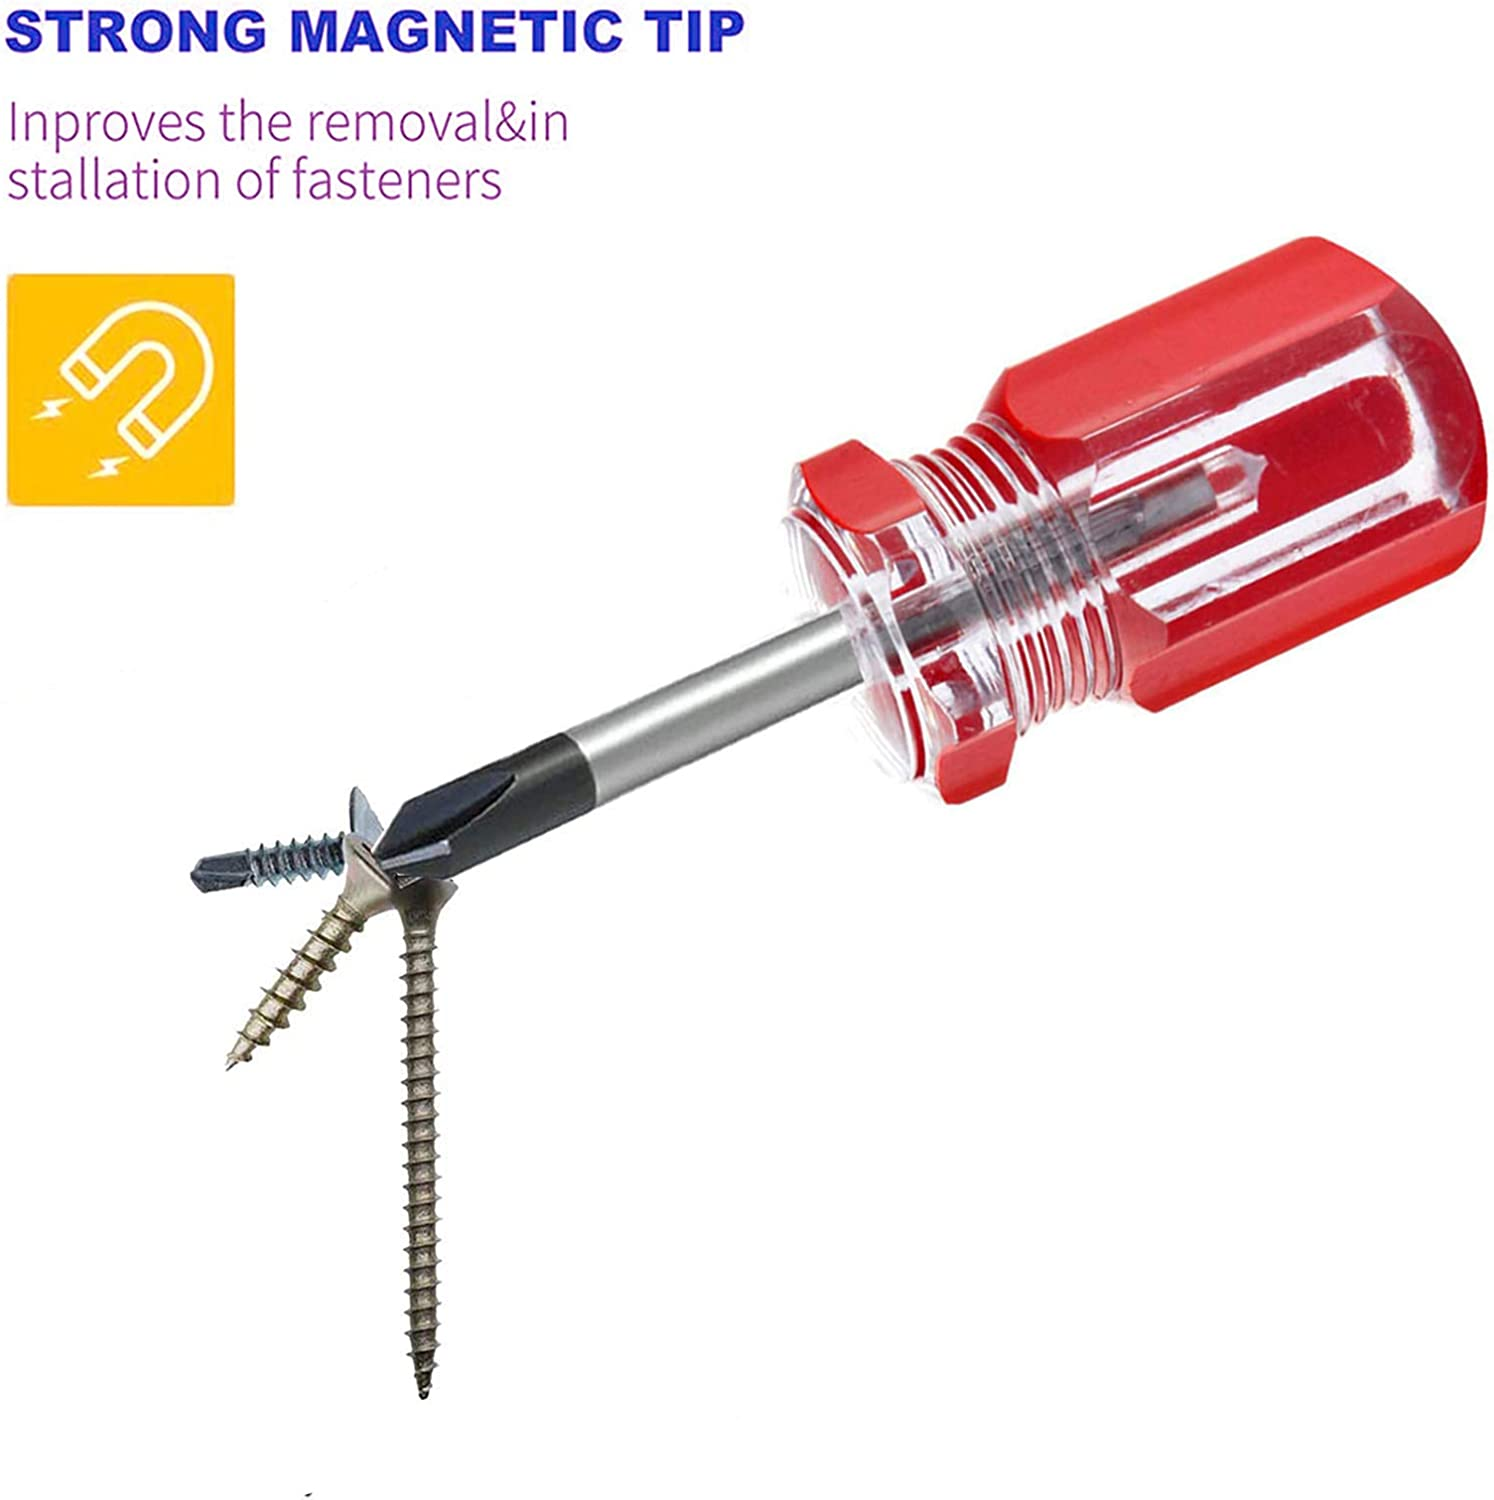 Buy Buspoll Small Stubby Screwdriver Sets 2 Piece Set 6 X 38mm Phillips Screwdriver And Flat Screwdriver Online In Indonesia B084zrynv3